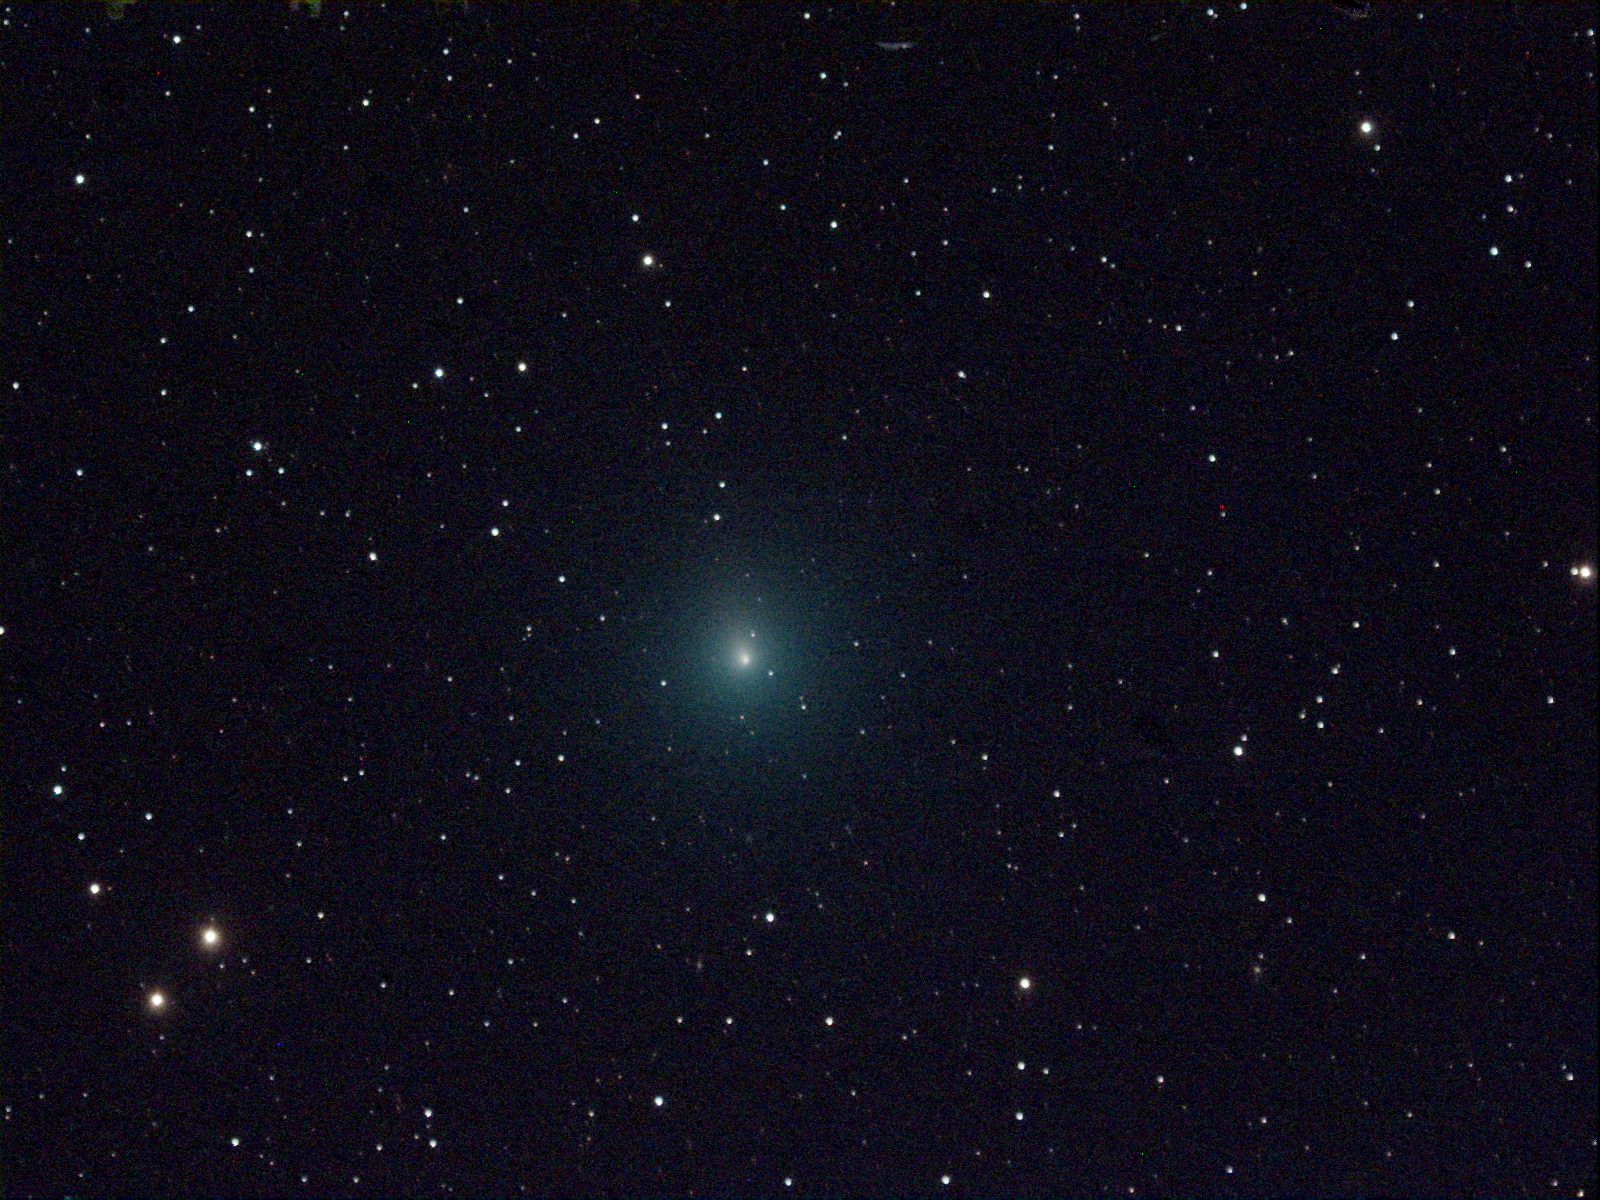 Comet 46P/Wirtanen, courtesy of Victor Ruiz, Siding Springs Observatory, Australia.